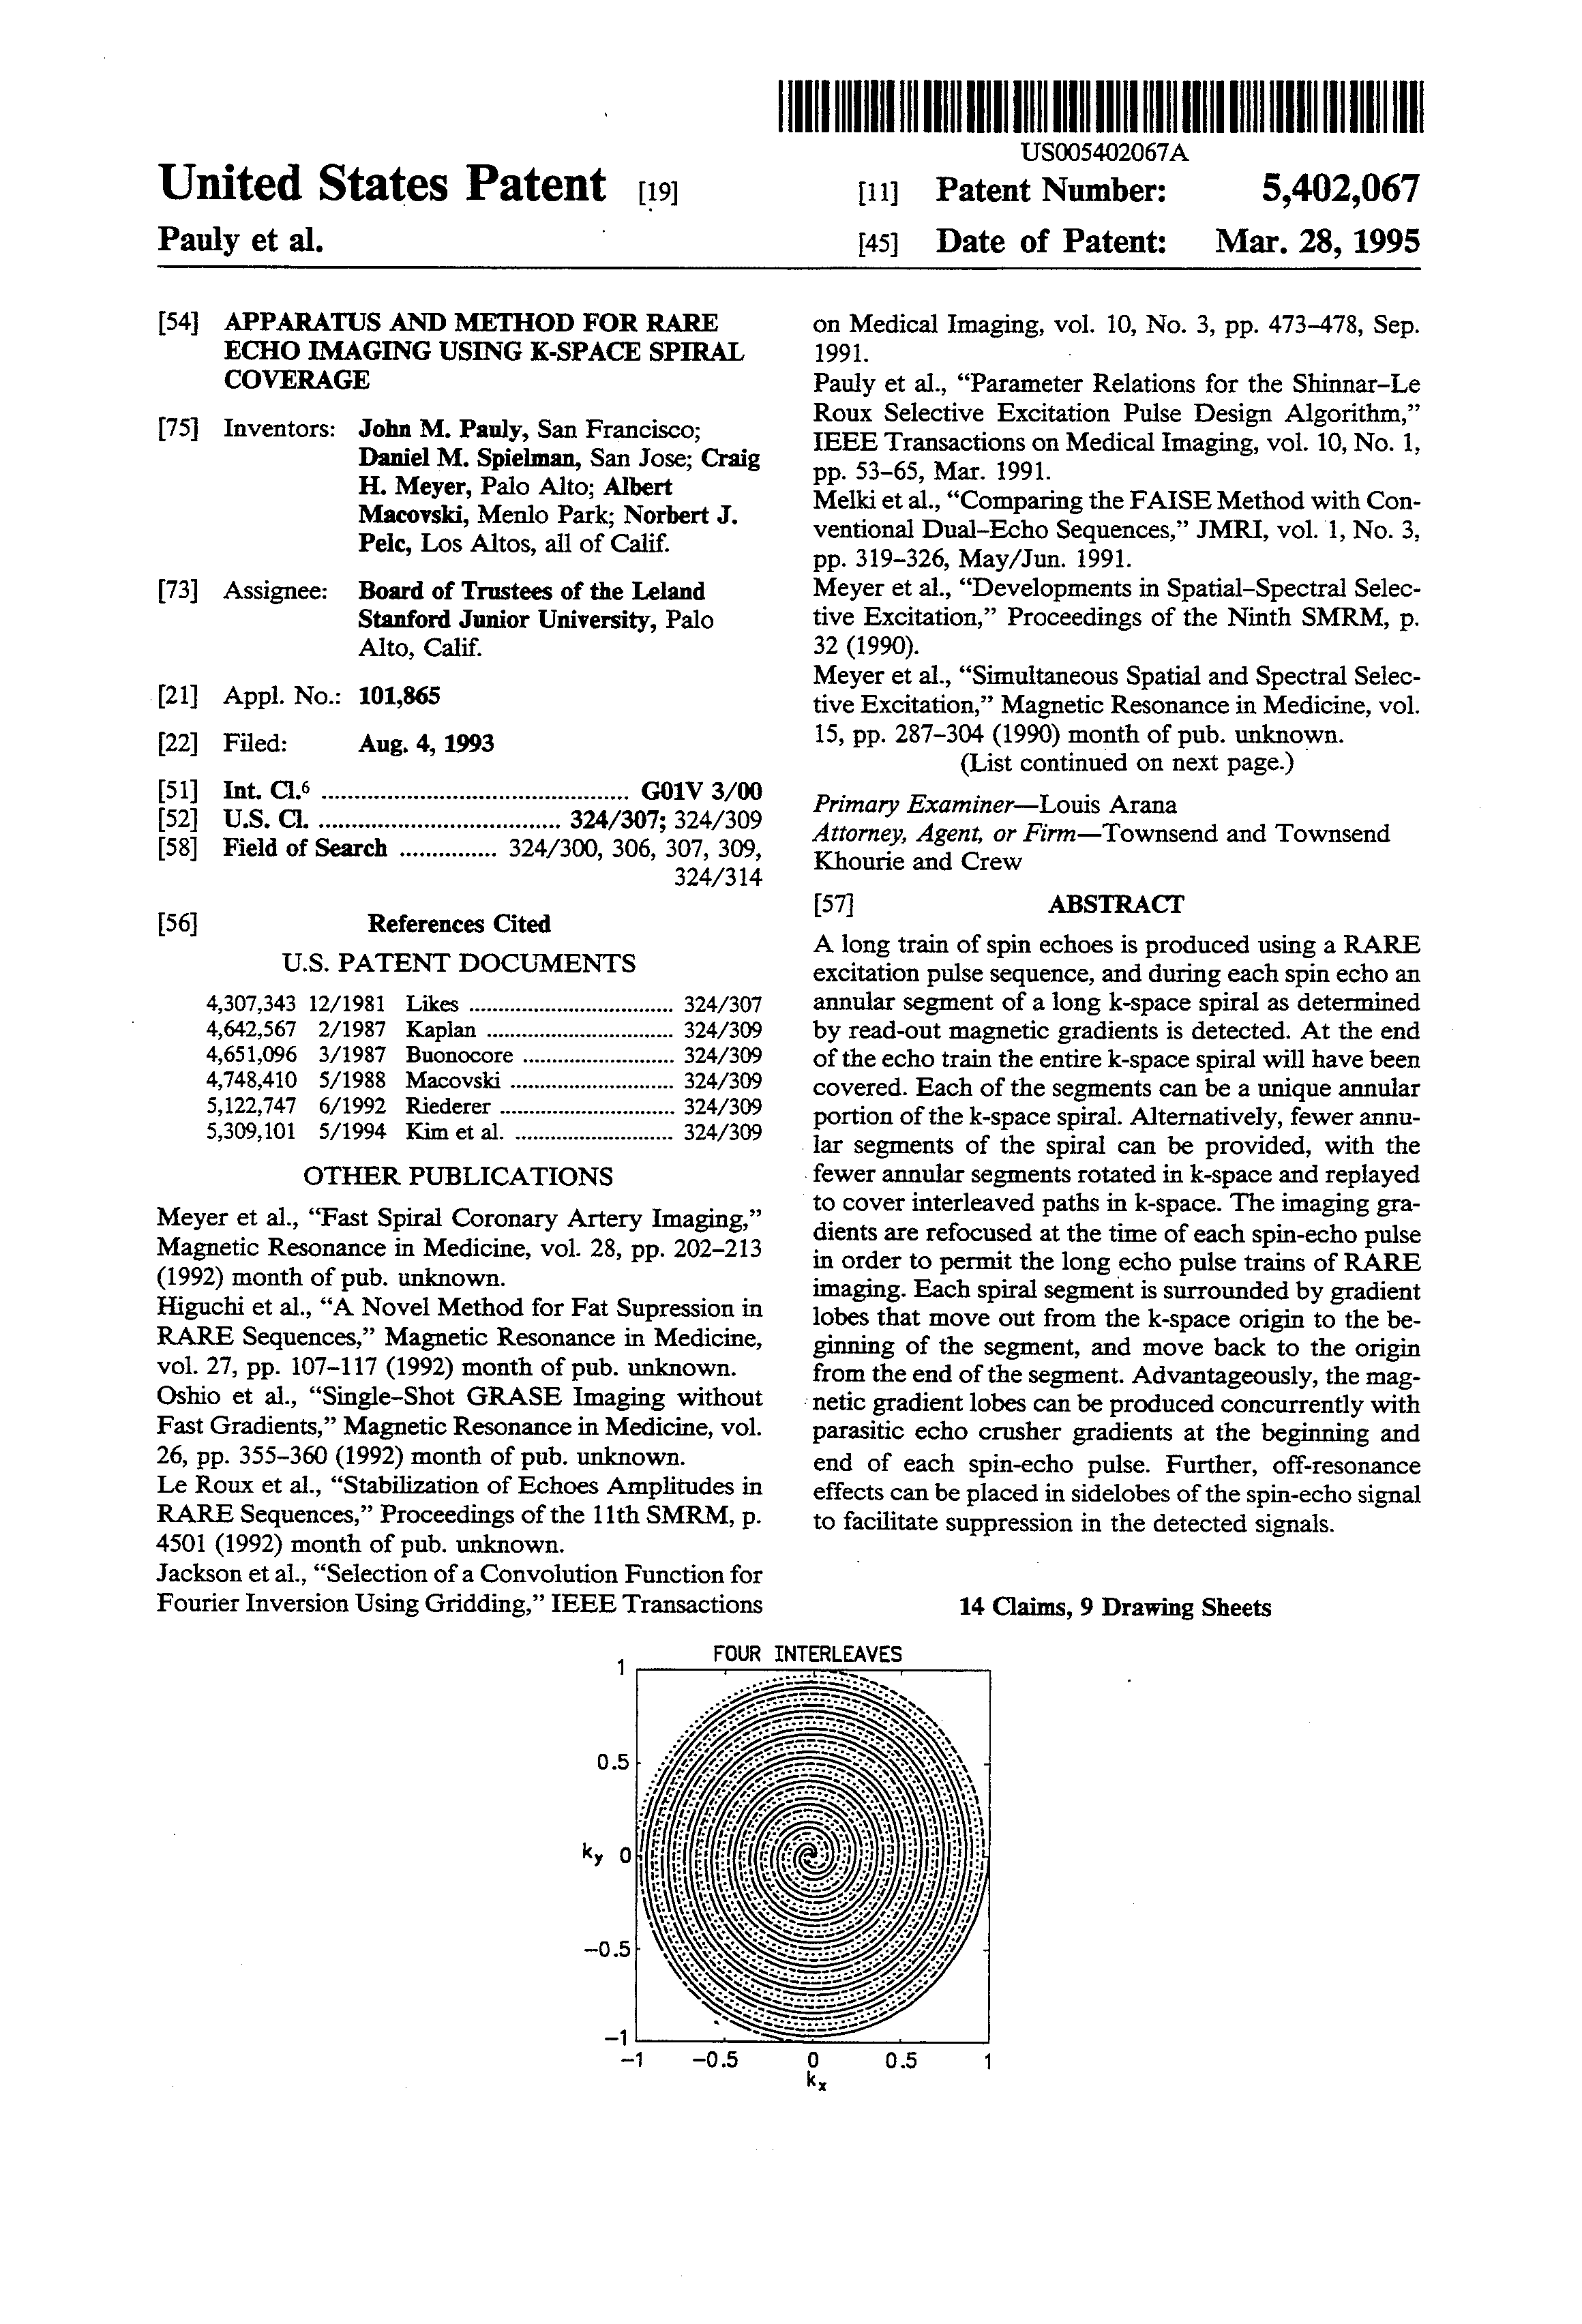 US 5402067 A - Apparatus And Method For Rare Echo Imaging